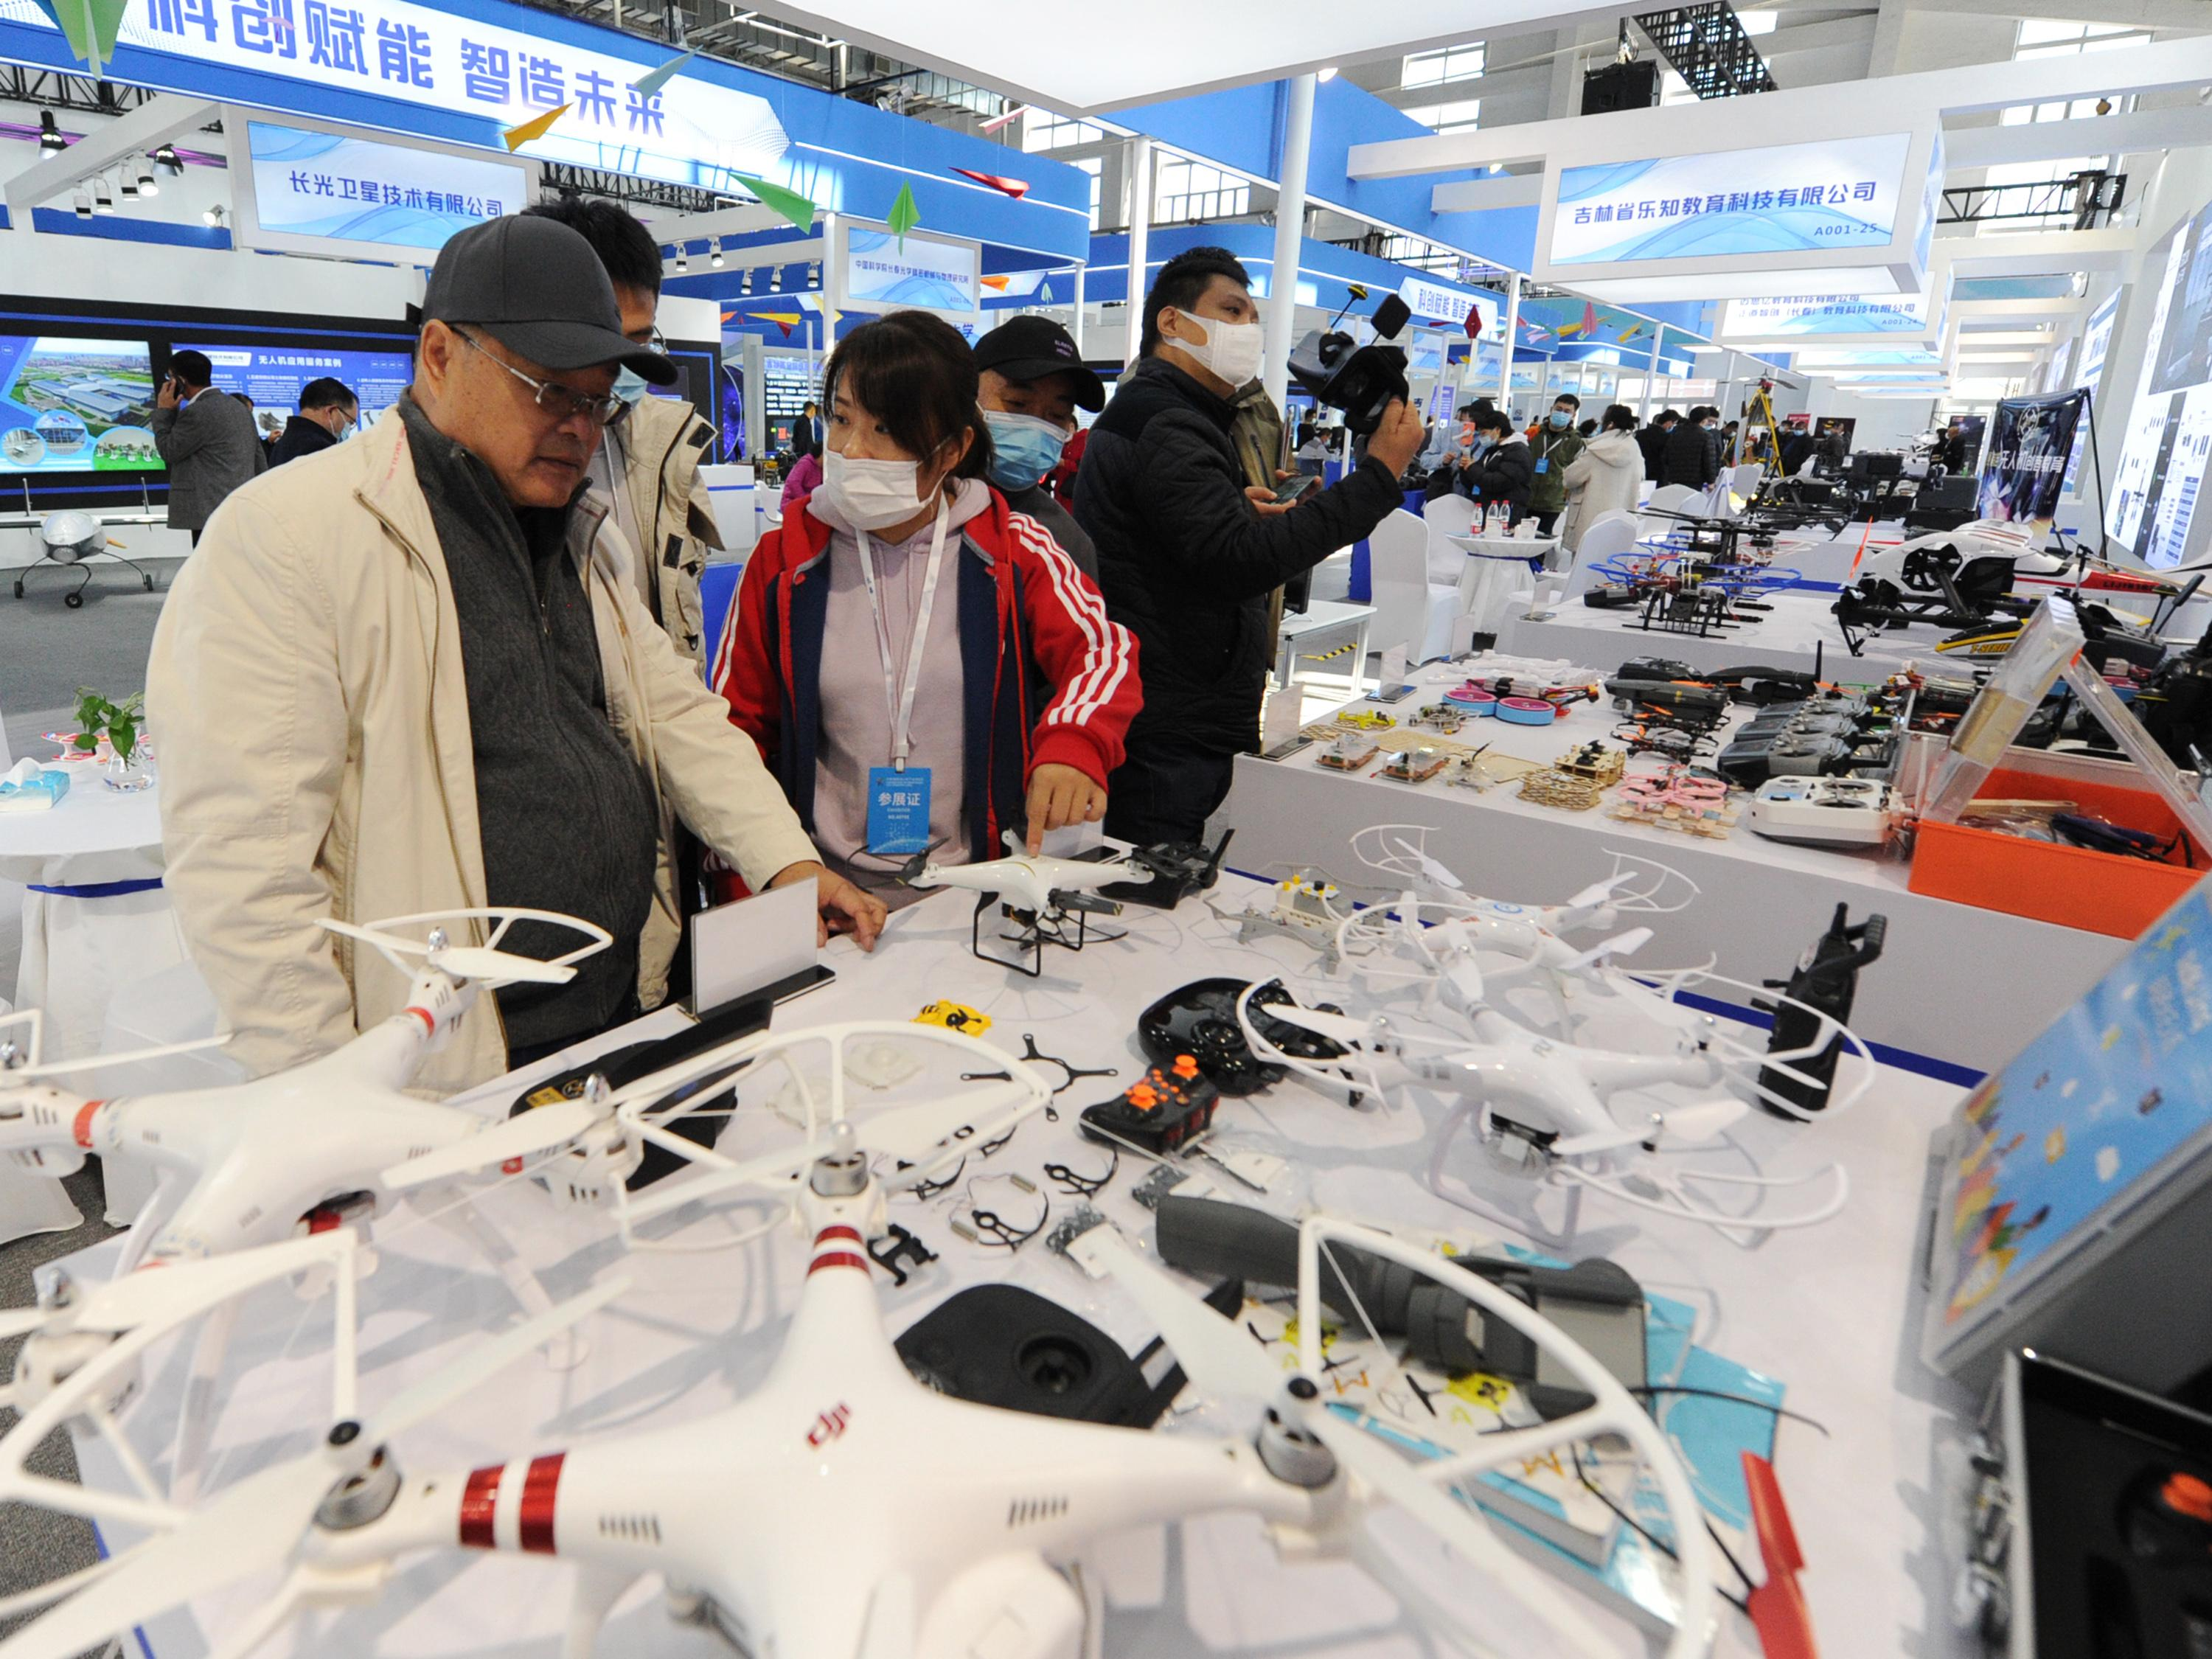 People look at drones at the DJI stand during the 2020 Changchun International UAV Industry Expo at CCIAFF Expo park on October 16, 2020 in Changchun, Jilin Province of China.